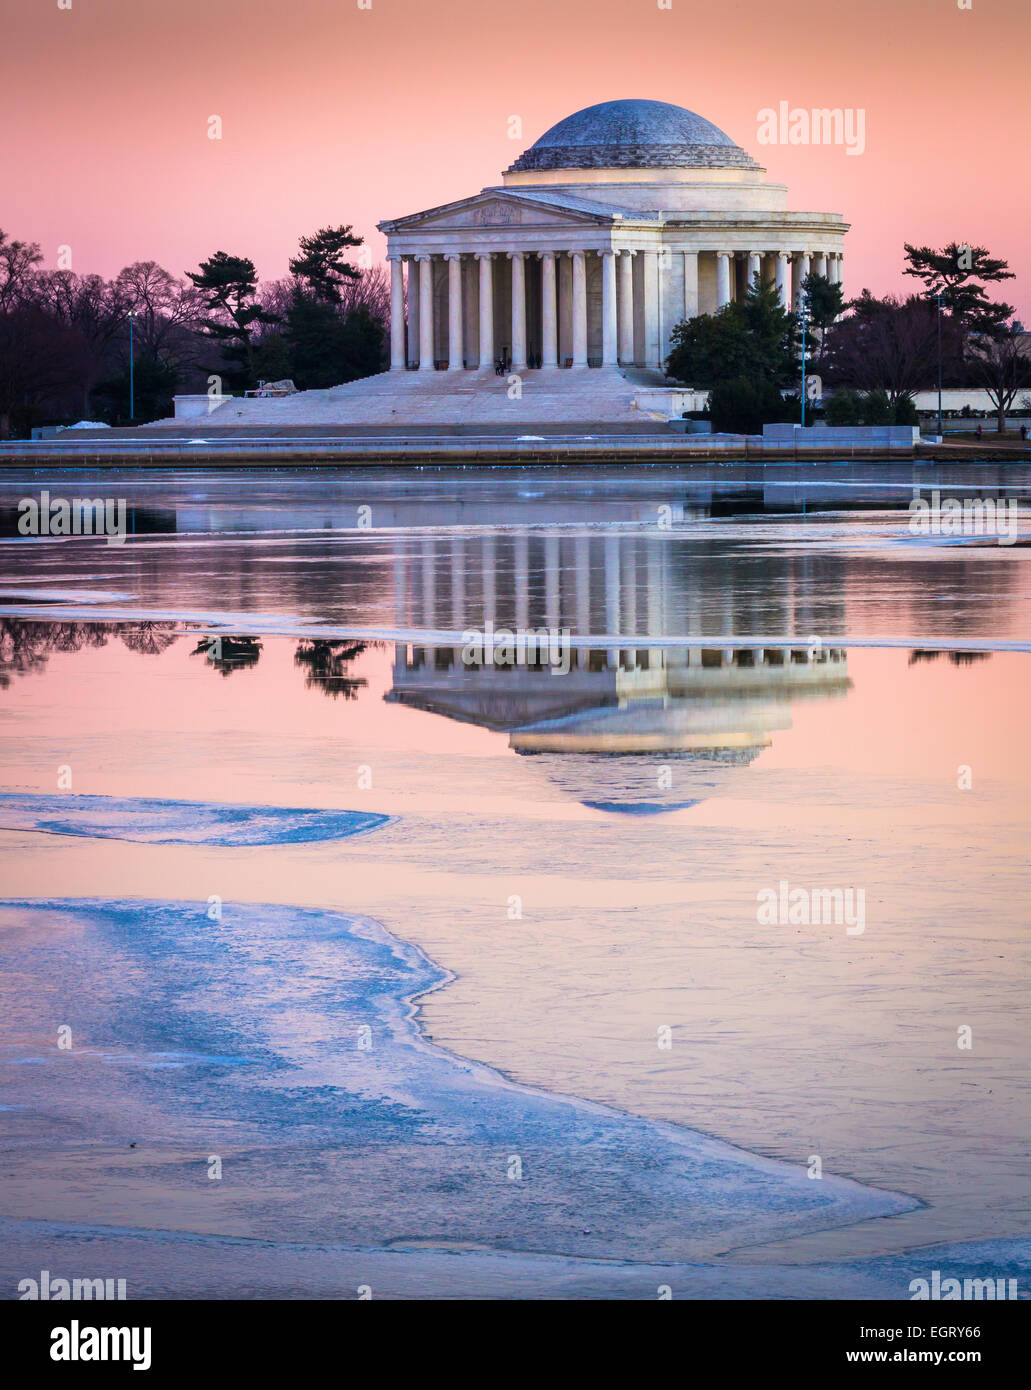 El Thomas Jefferson Memorial en Washington, D.C., está dedicado a Thomas Jefferson, el tercer Presidente de Imagen De Stock